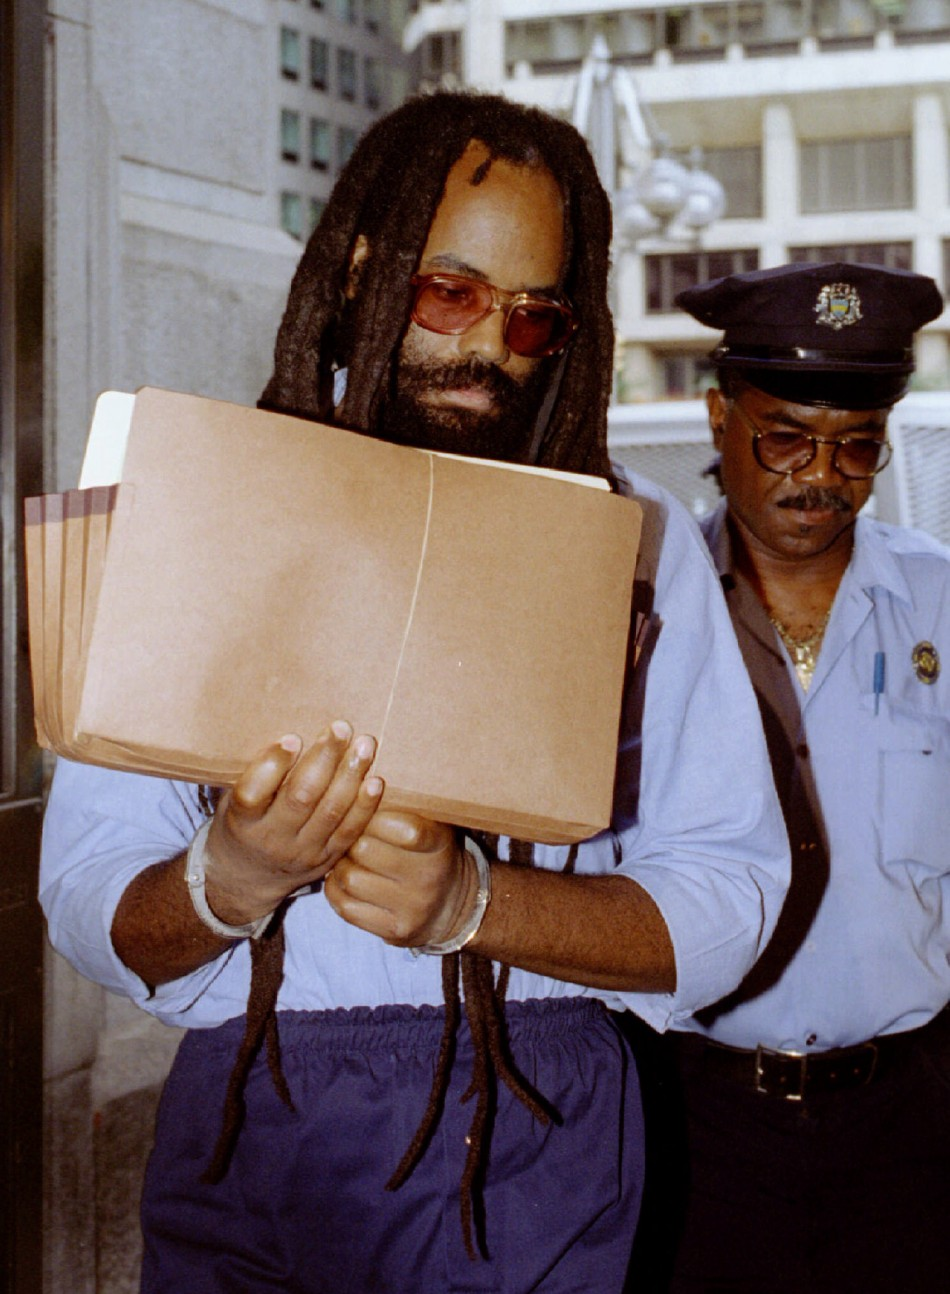 Mumia Abu-Jamal, convicted of slaying a Philadelphia policeman in 1981